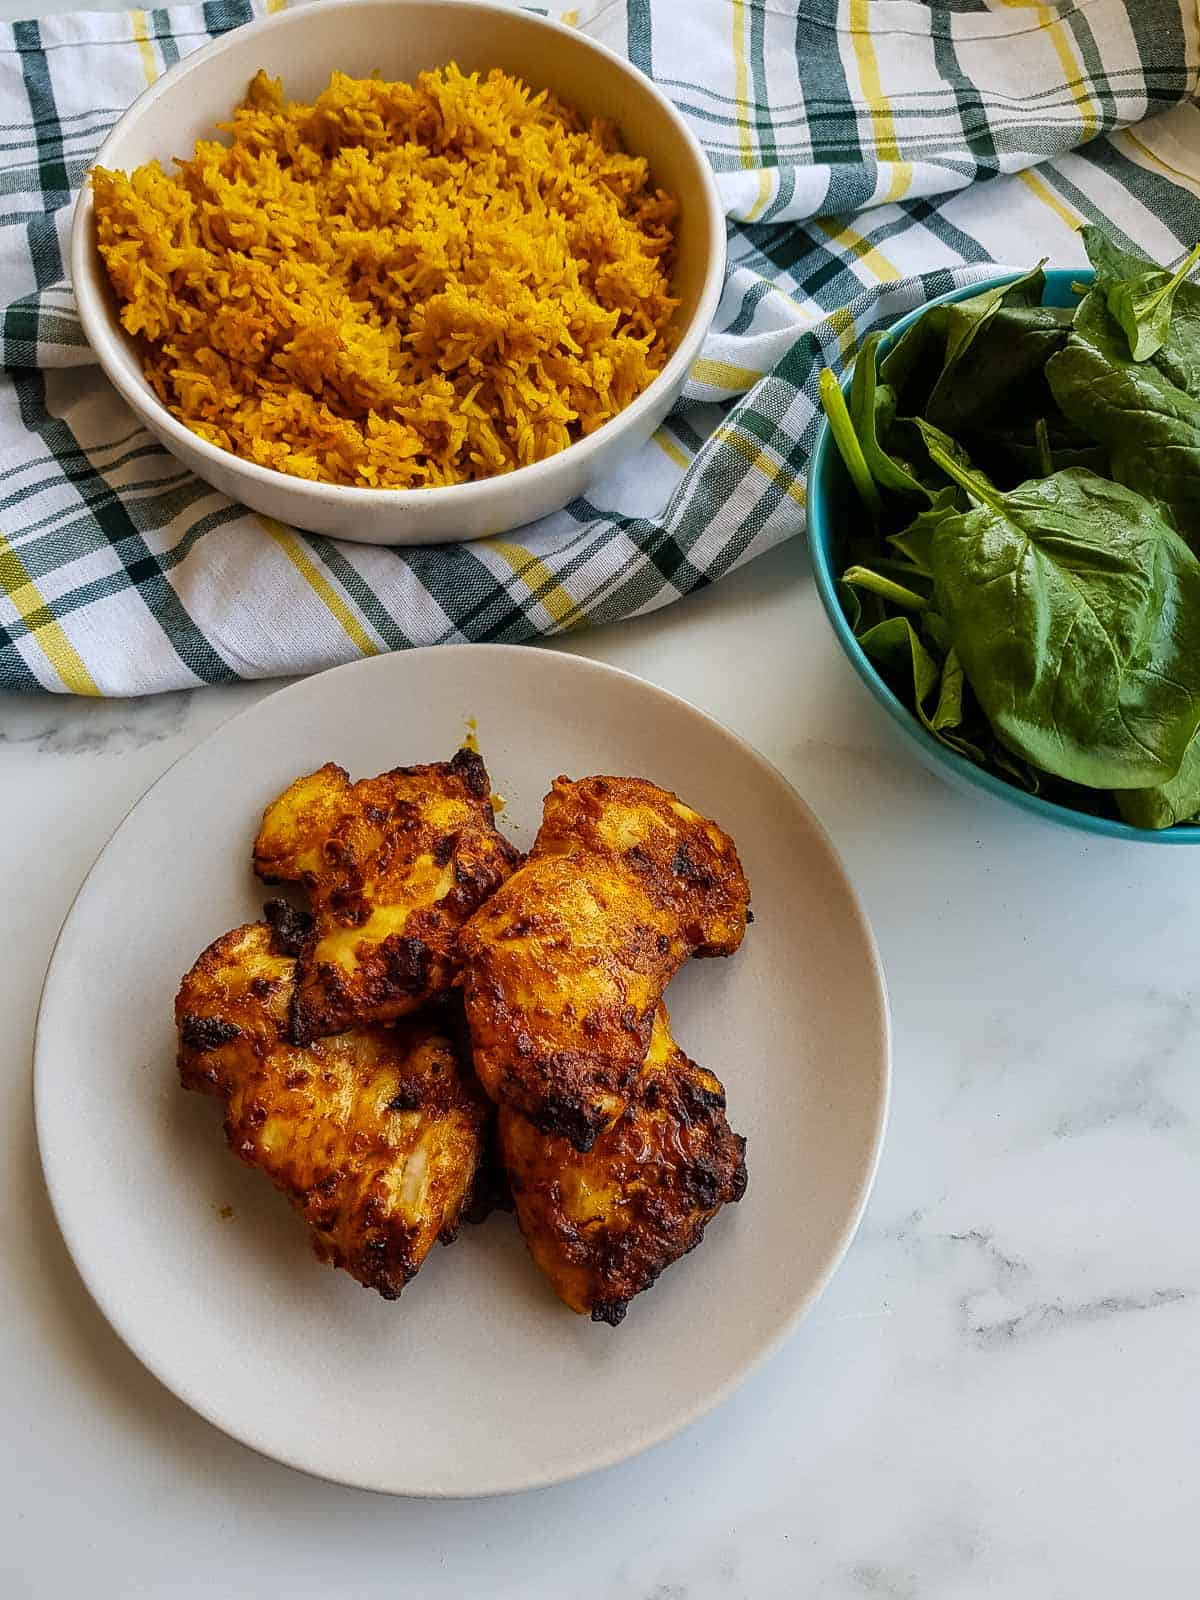 Chicken thighs on a plate with rice and salad in the background.